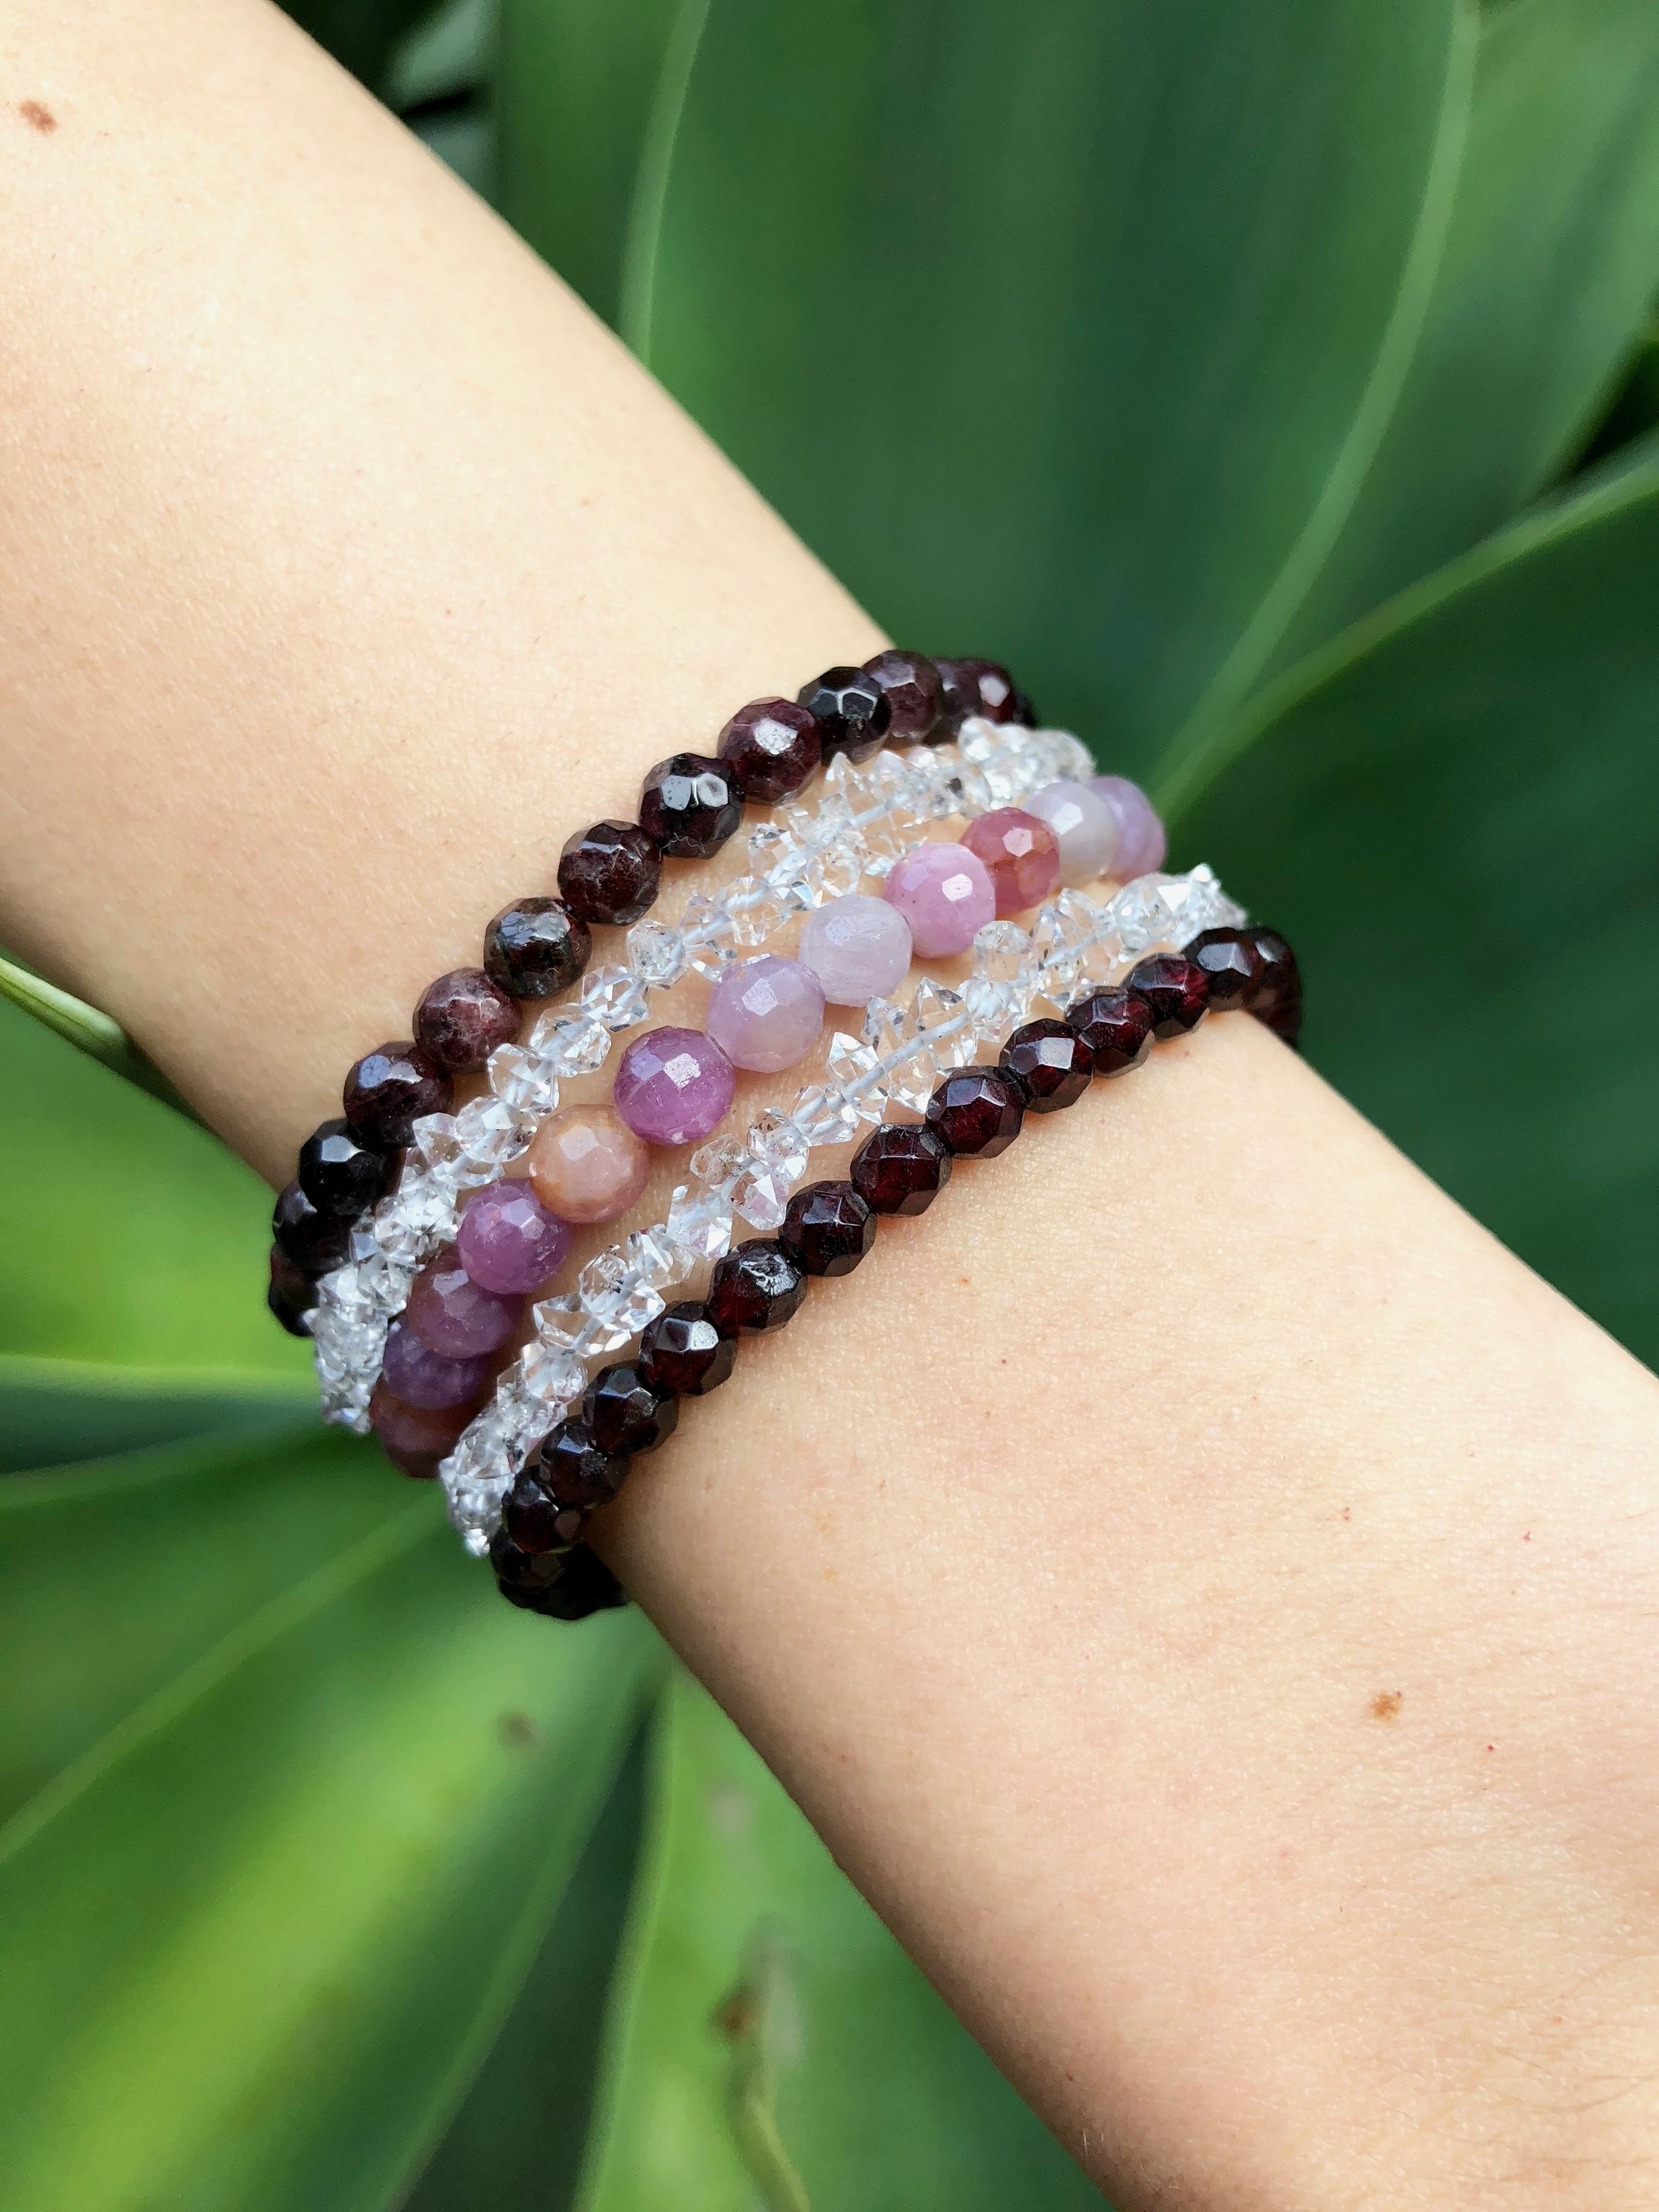 Pictured: Wax & Wane Bracelets; Garnet, Herkimer Diamond and Ruby